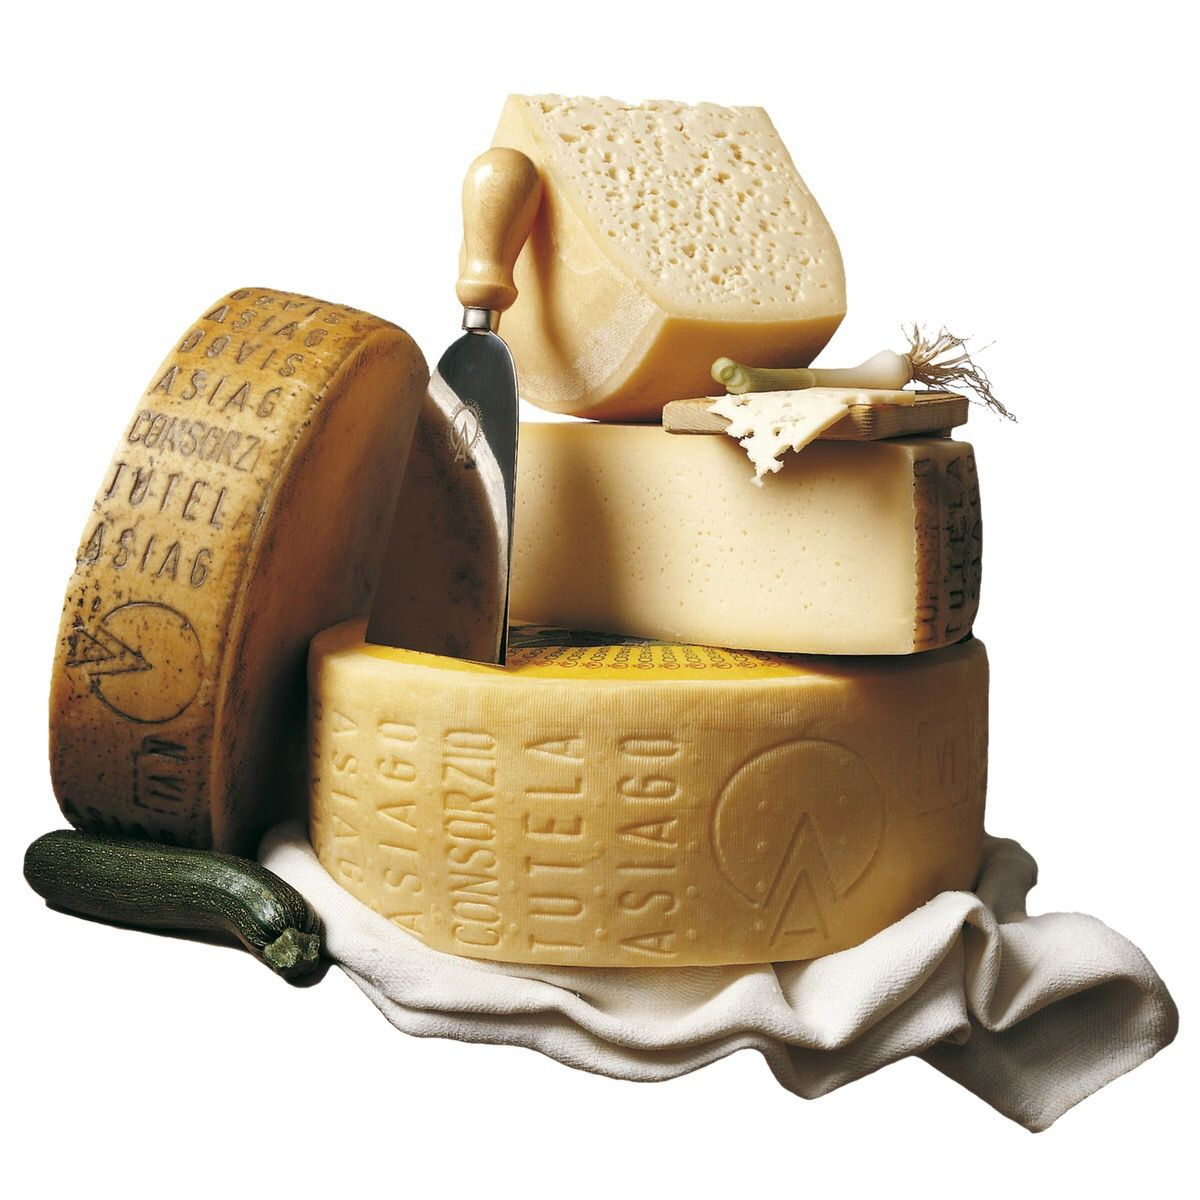 Pin by Ксюша on Cheese Asiago, Cheese lover, Cheese